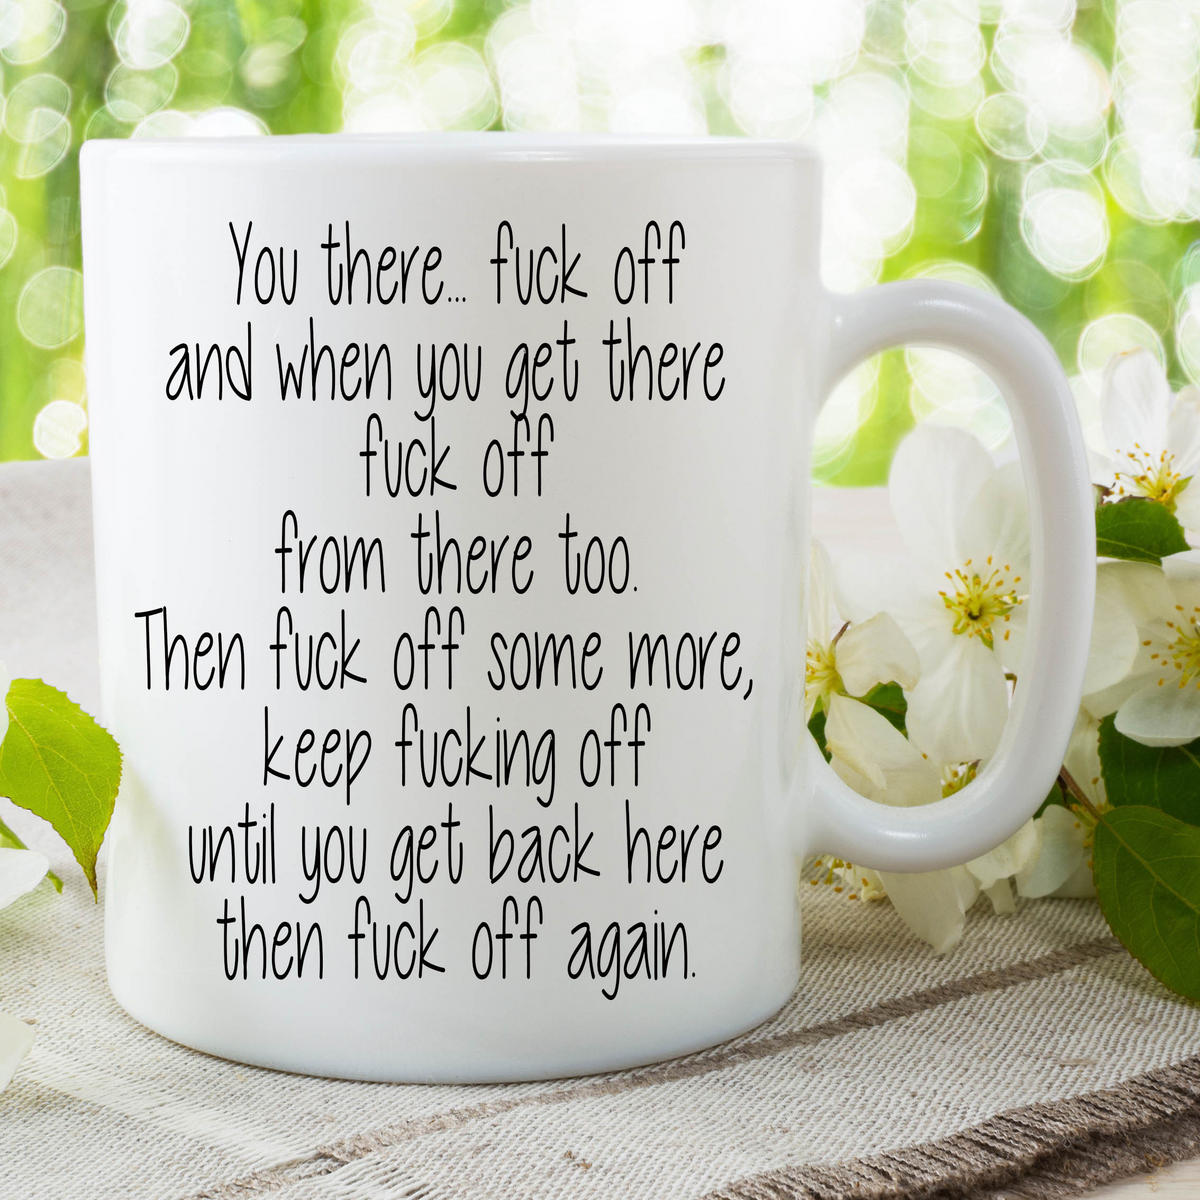 Funny Novelty Mugs Work Office Humour Cup Ceramic Joke Adult Offensive WSDMUG658